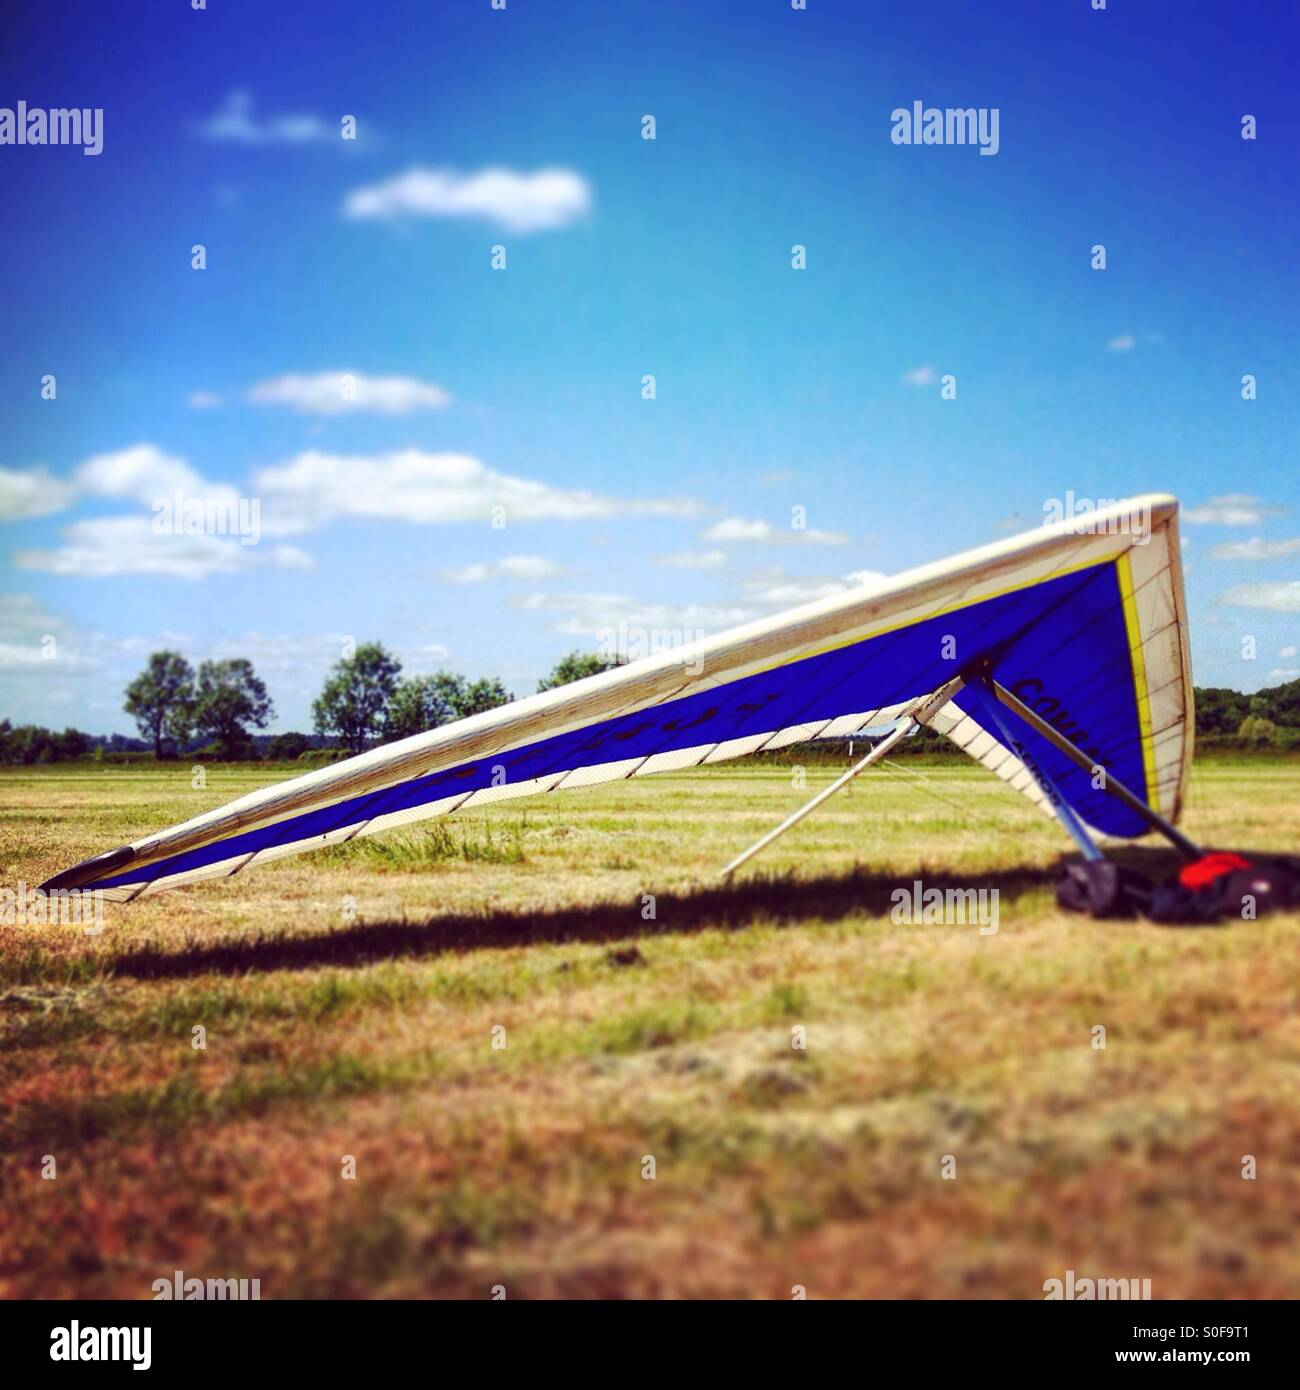 Hang glider on the ground - Stock Image